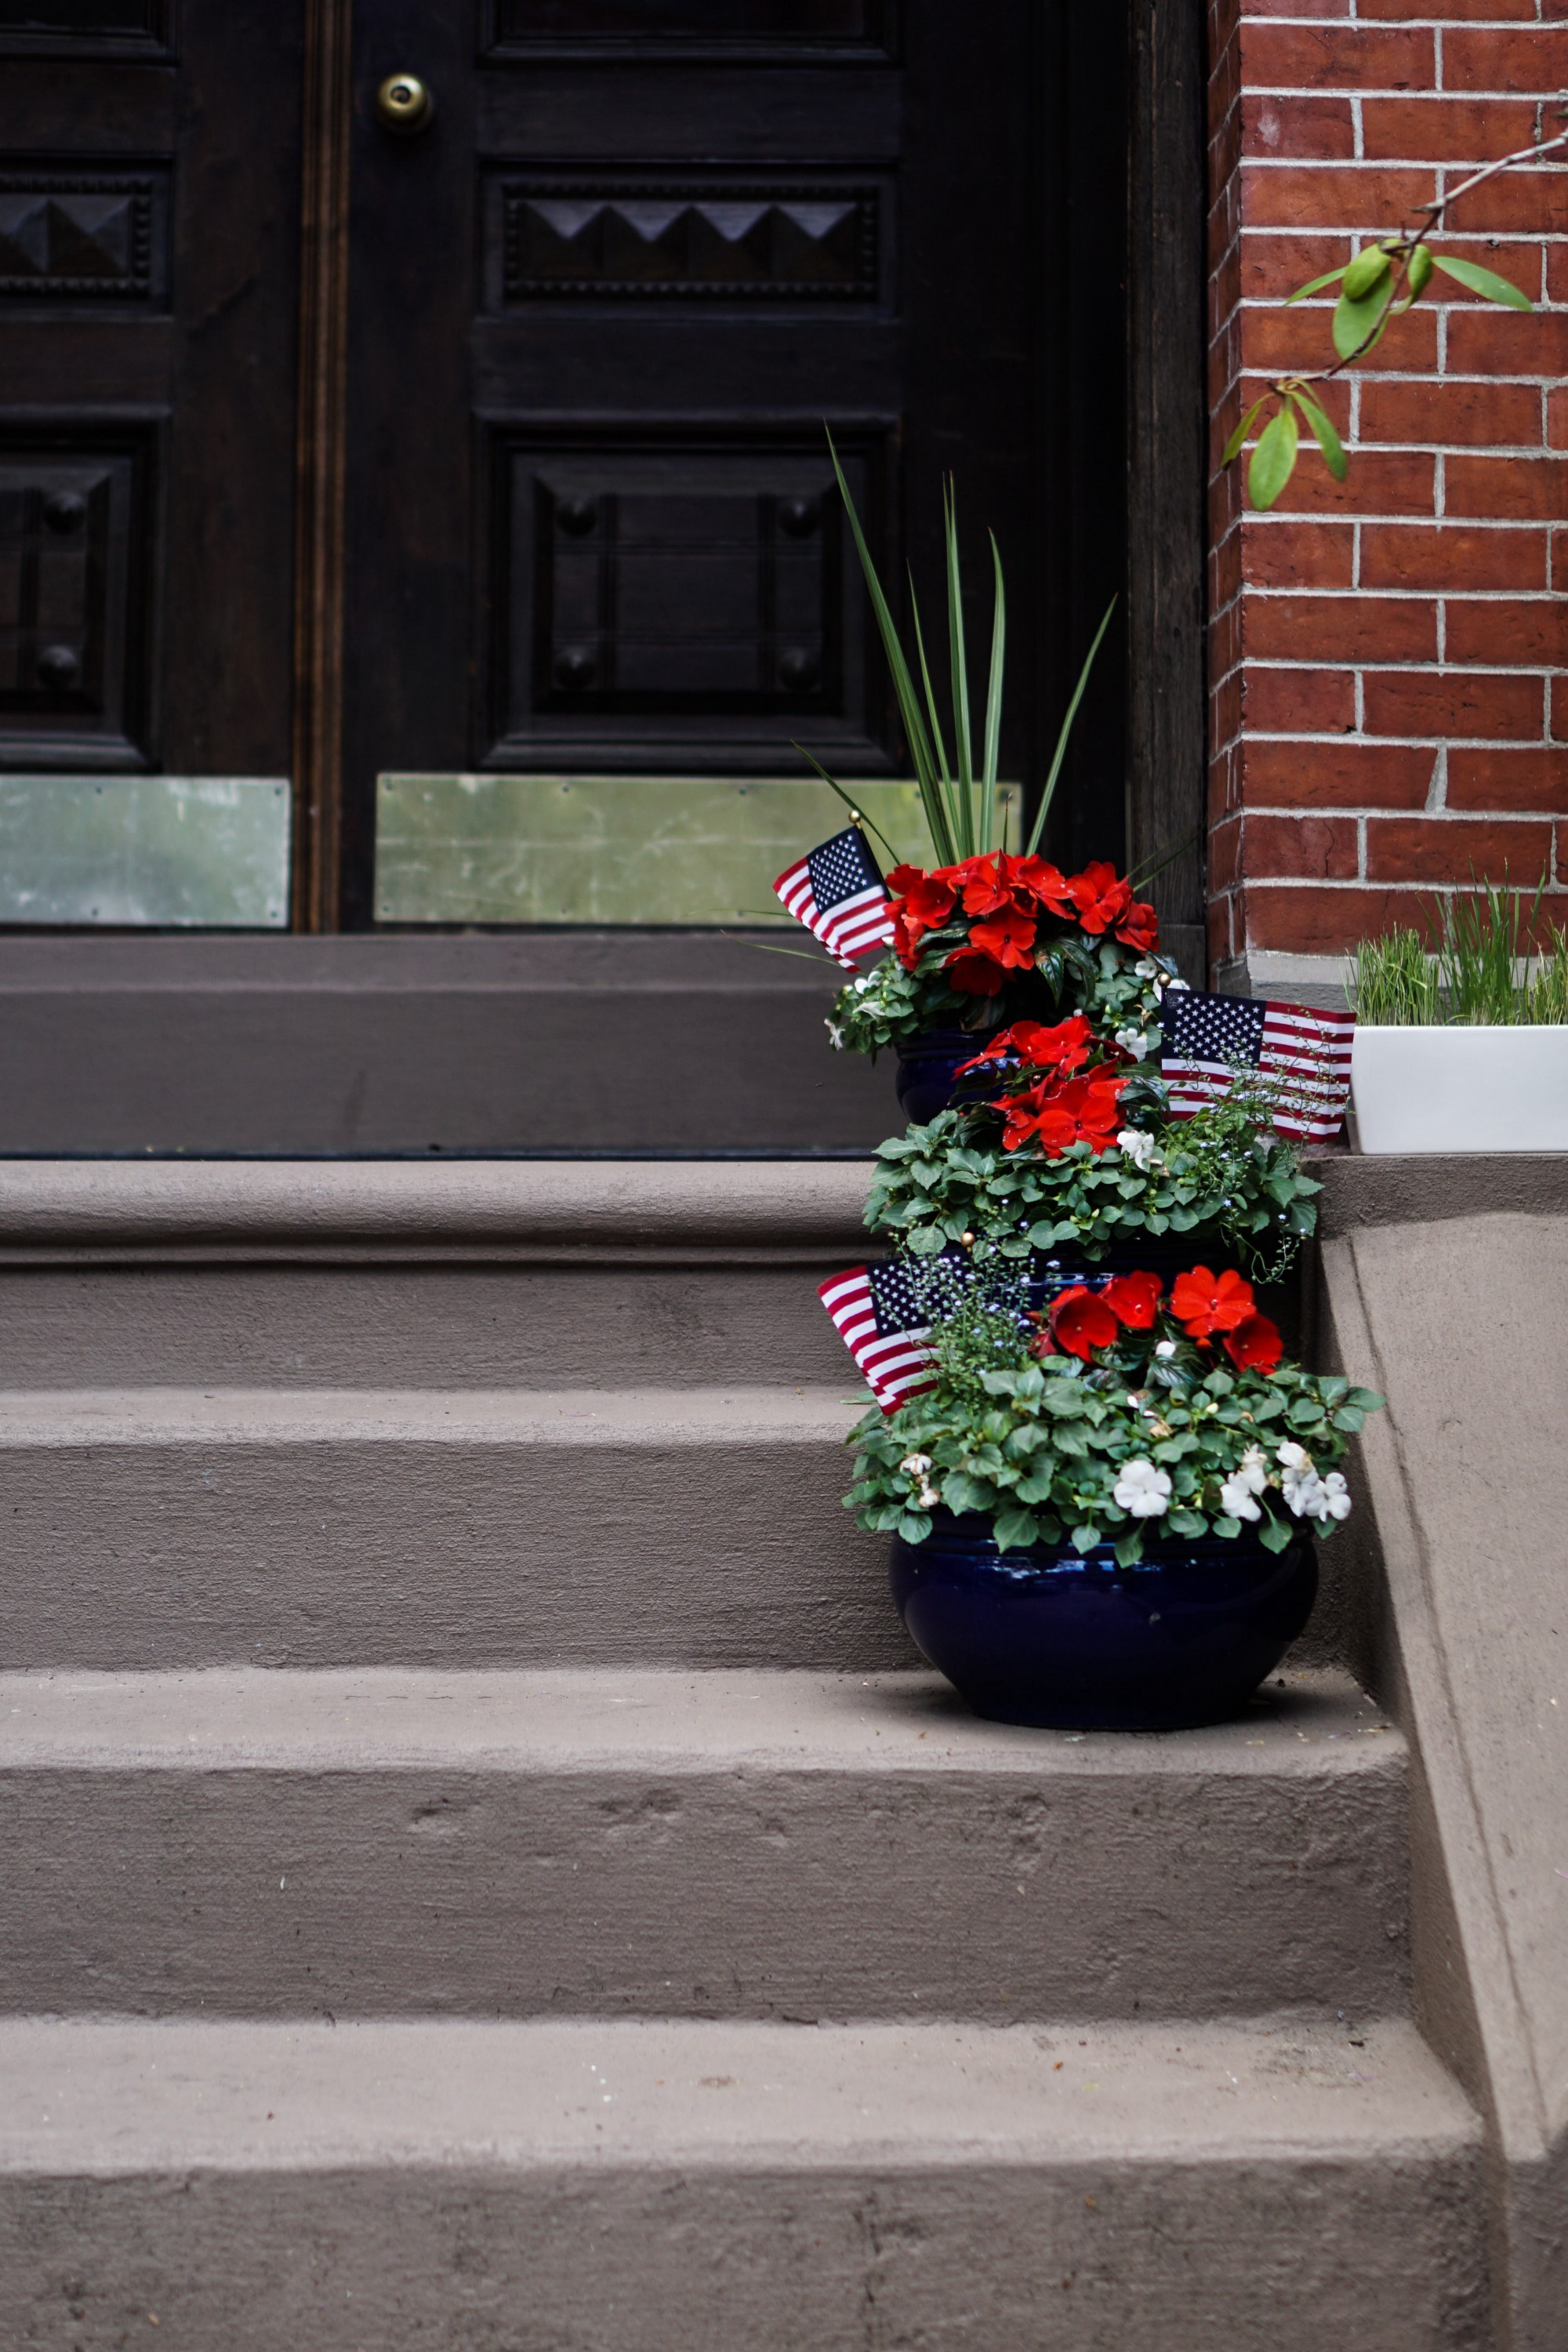 Memorial Day Flag and bouquets outside a home in South End, Boston